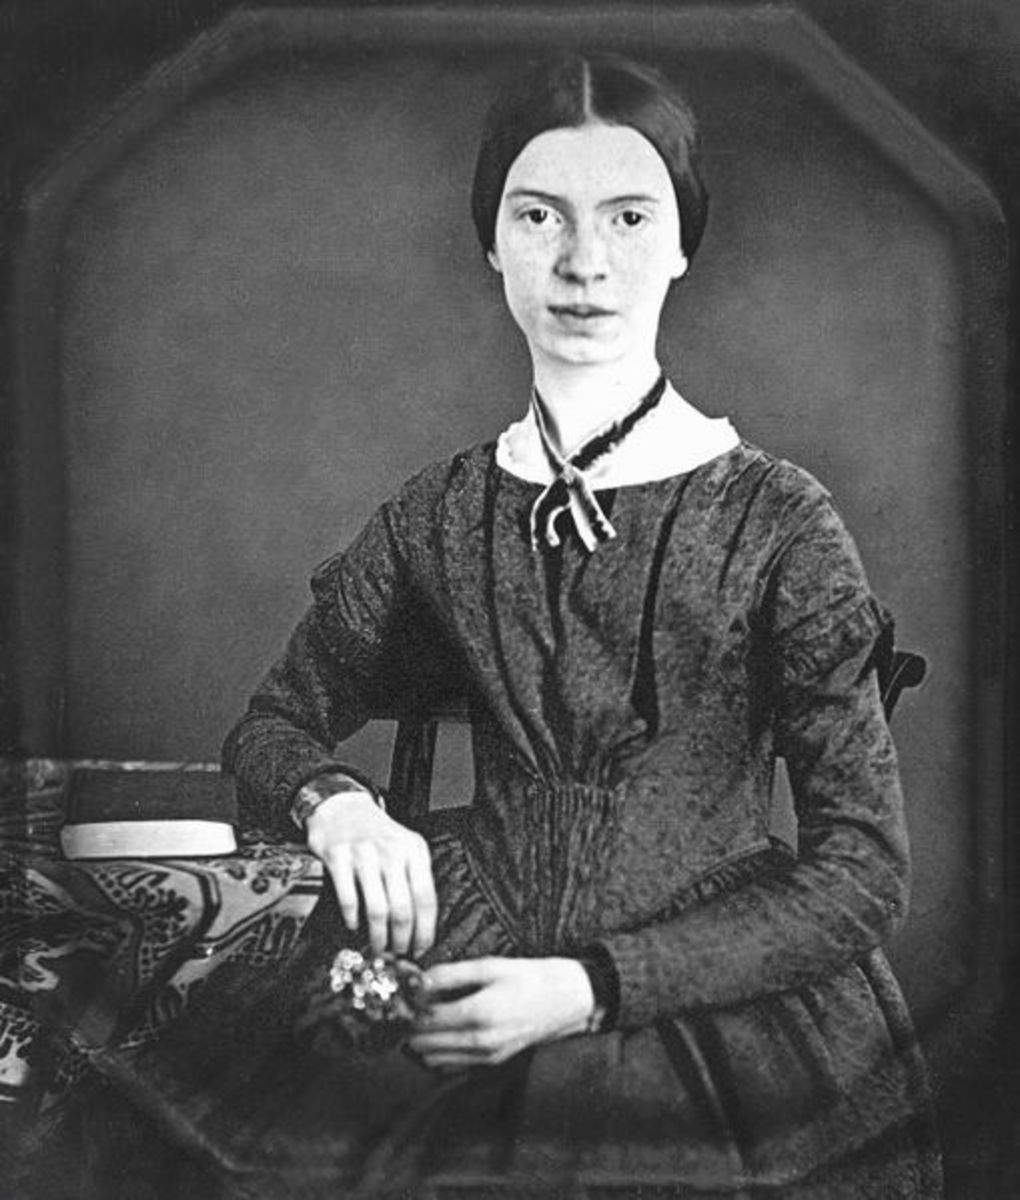 """0533. Emily Dickinson's """"Two Butterflies went out at Noon—"""""""